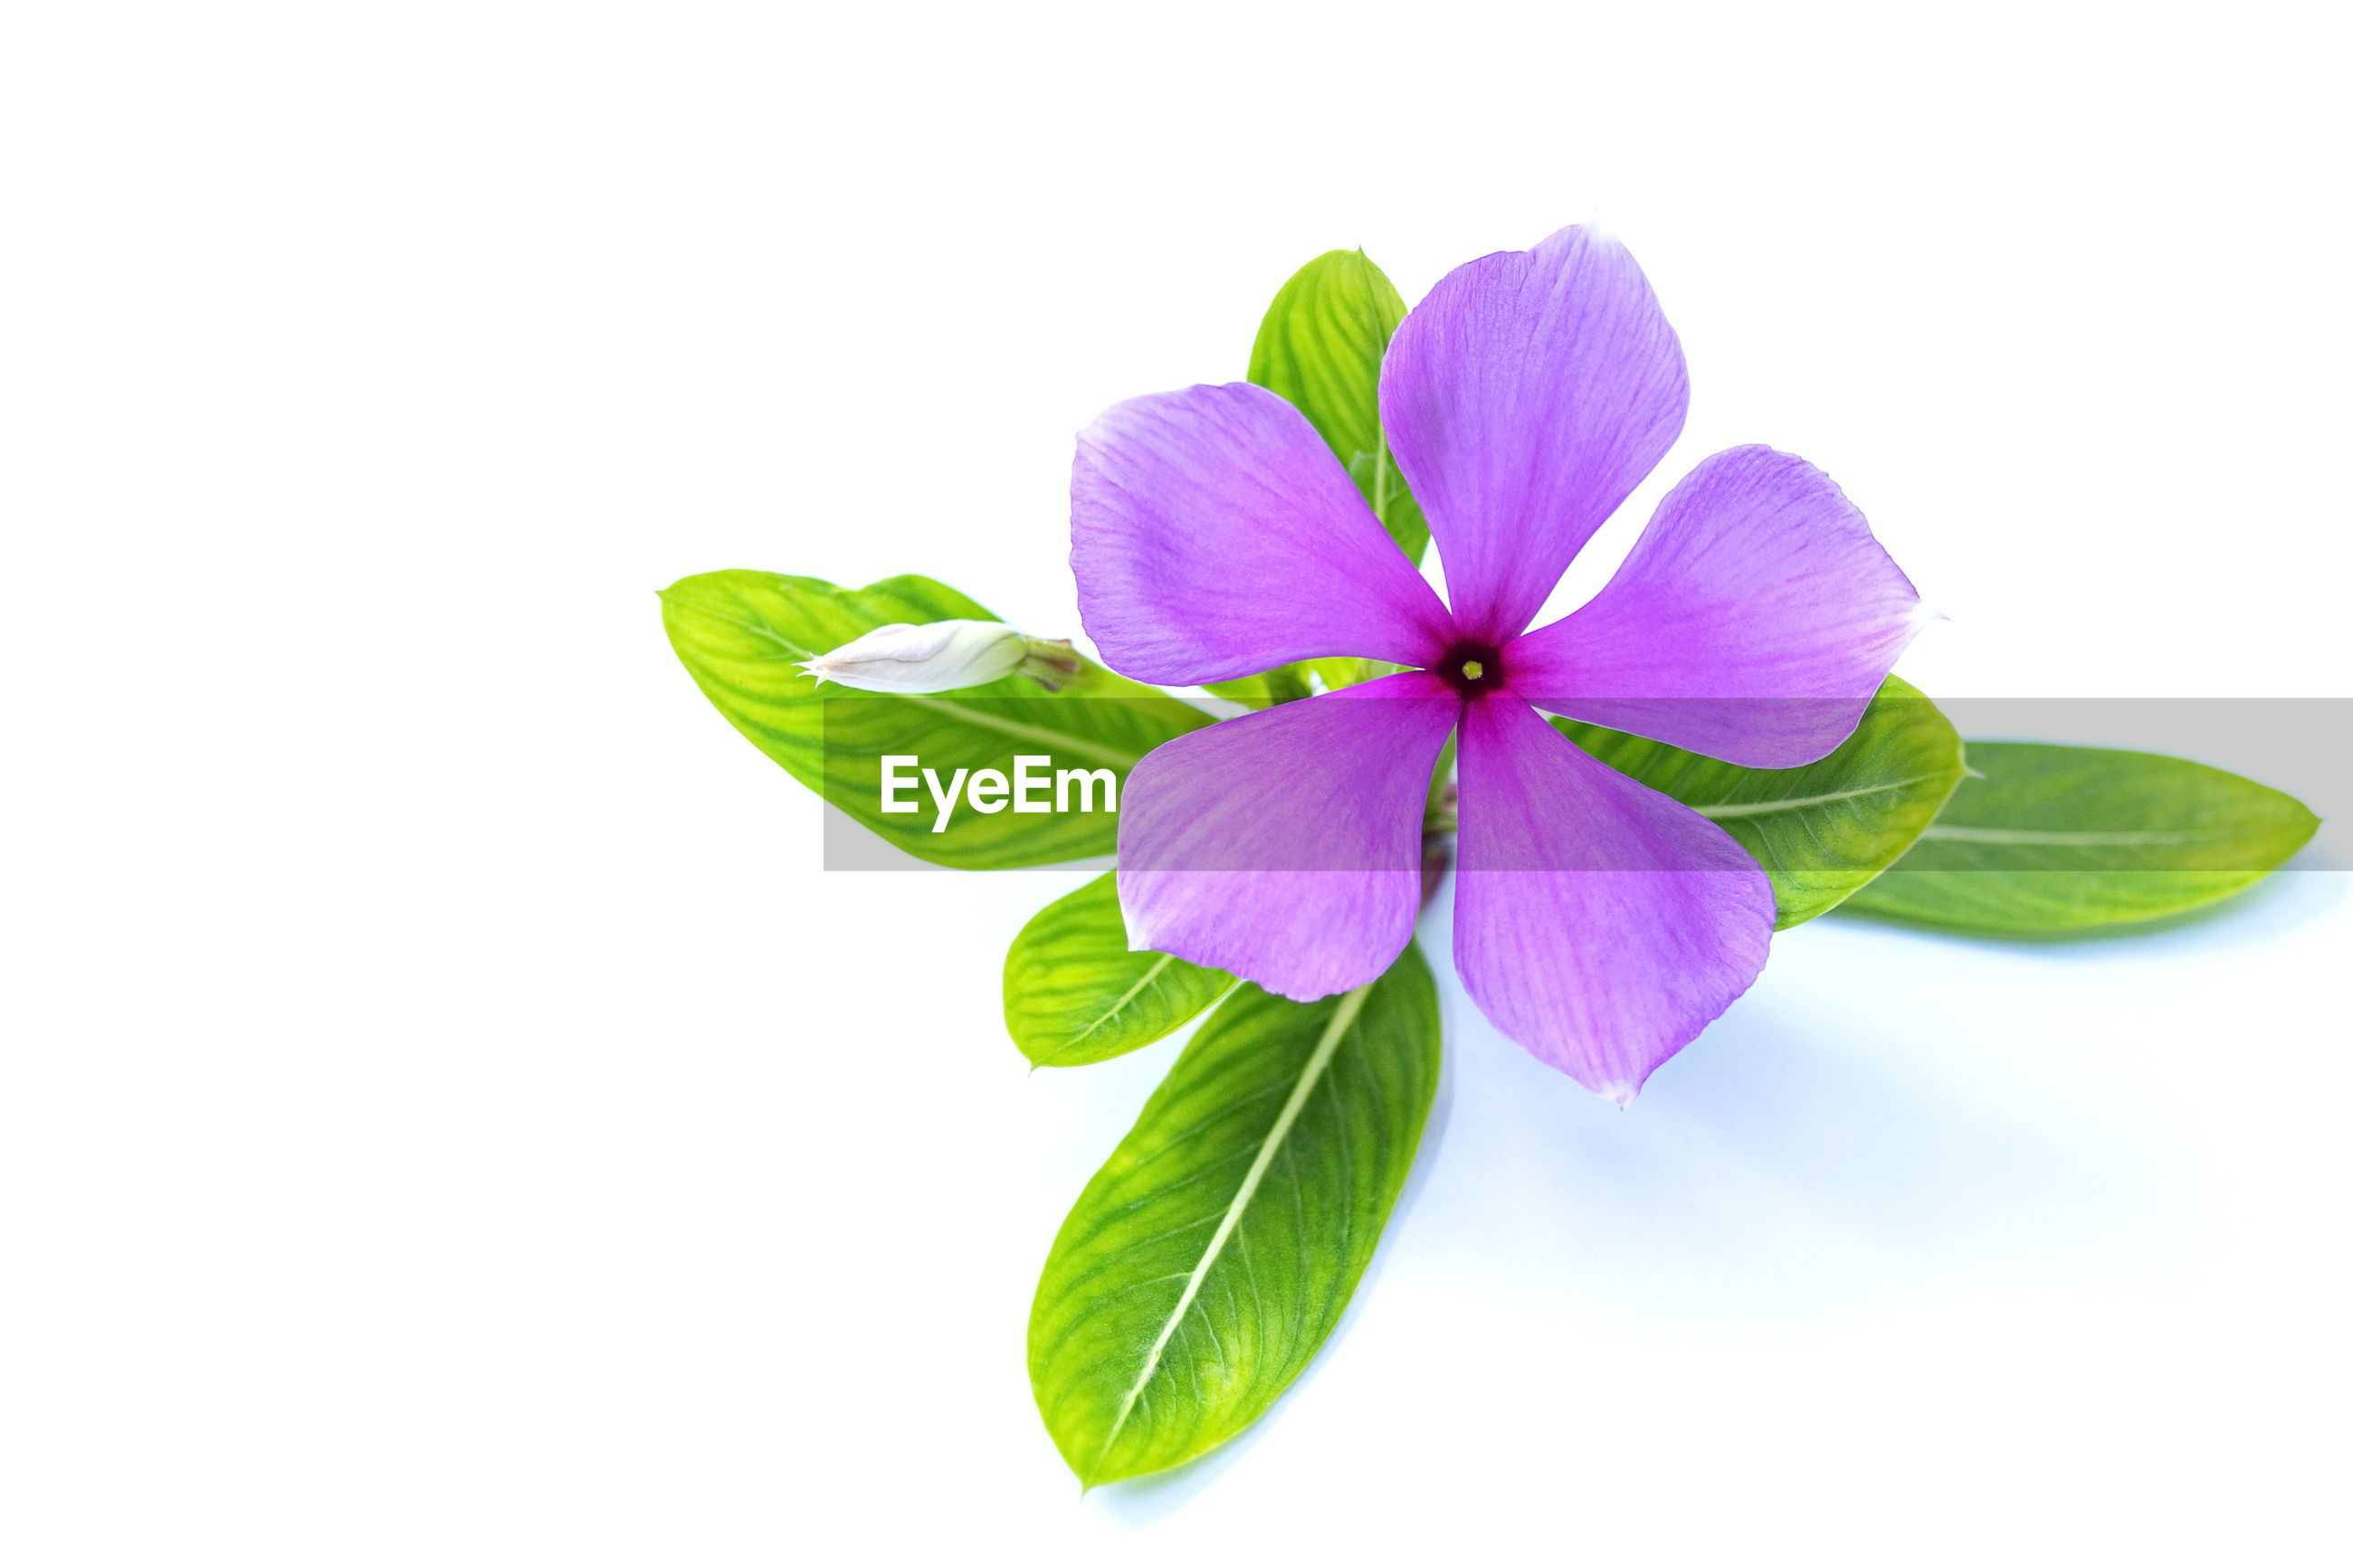 Close-up of purple flowering plant against white background